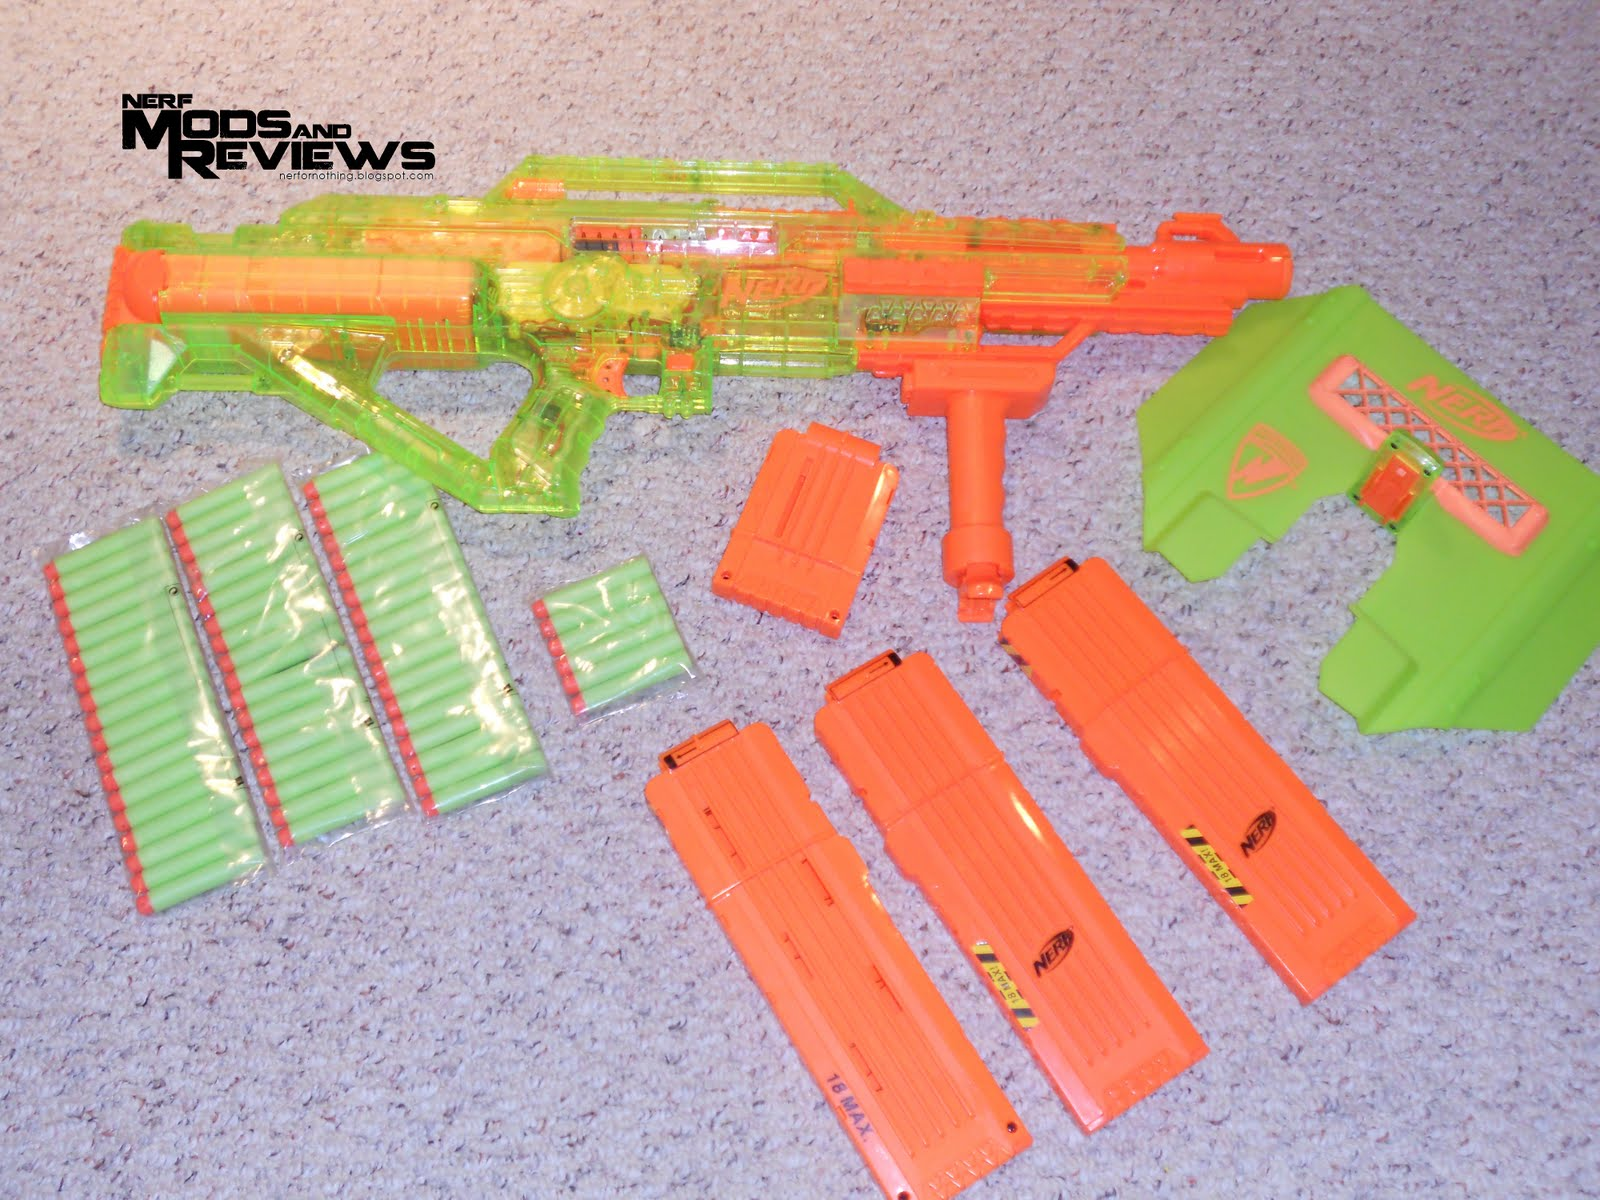 Urban Taggers Nerf Mods Amp Reviews Nerf Sonic Series